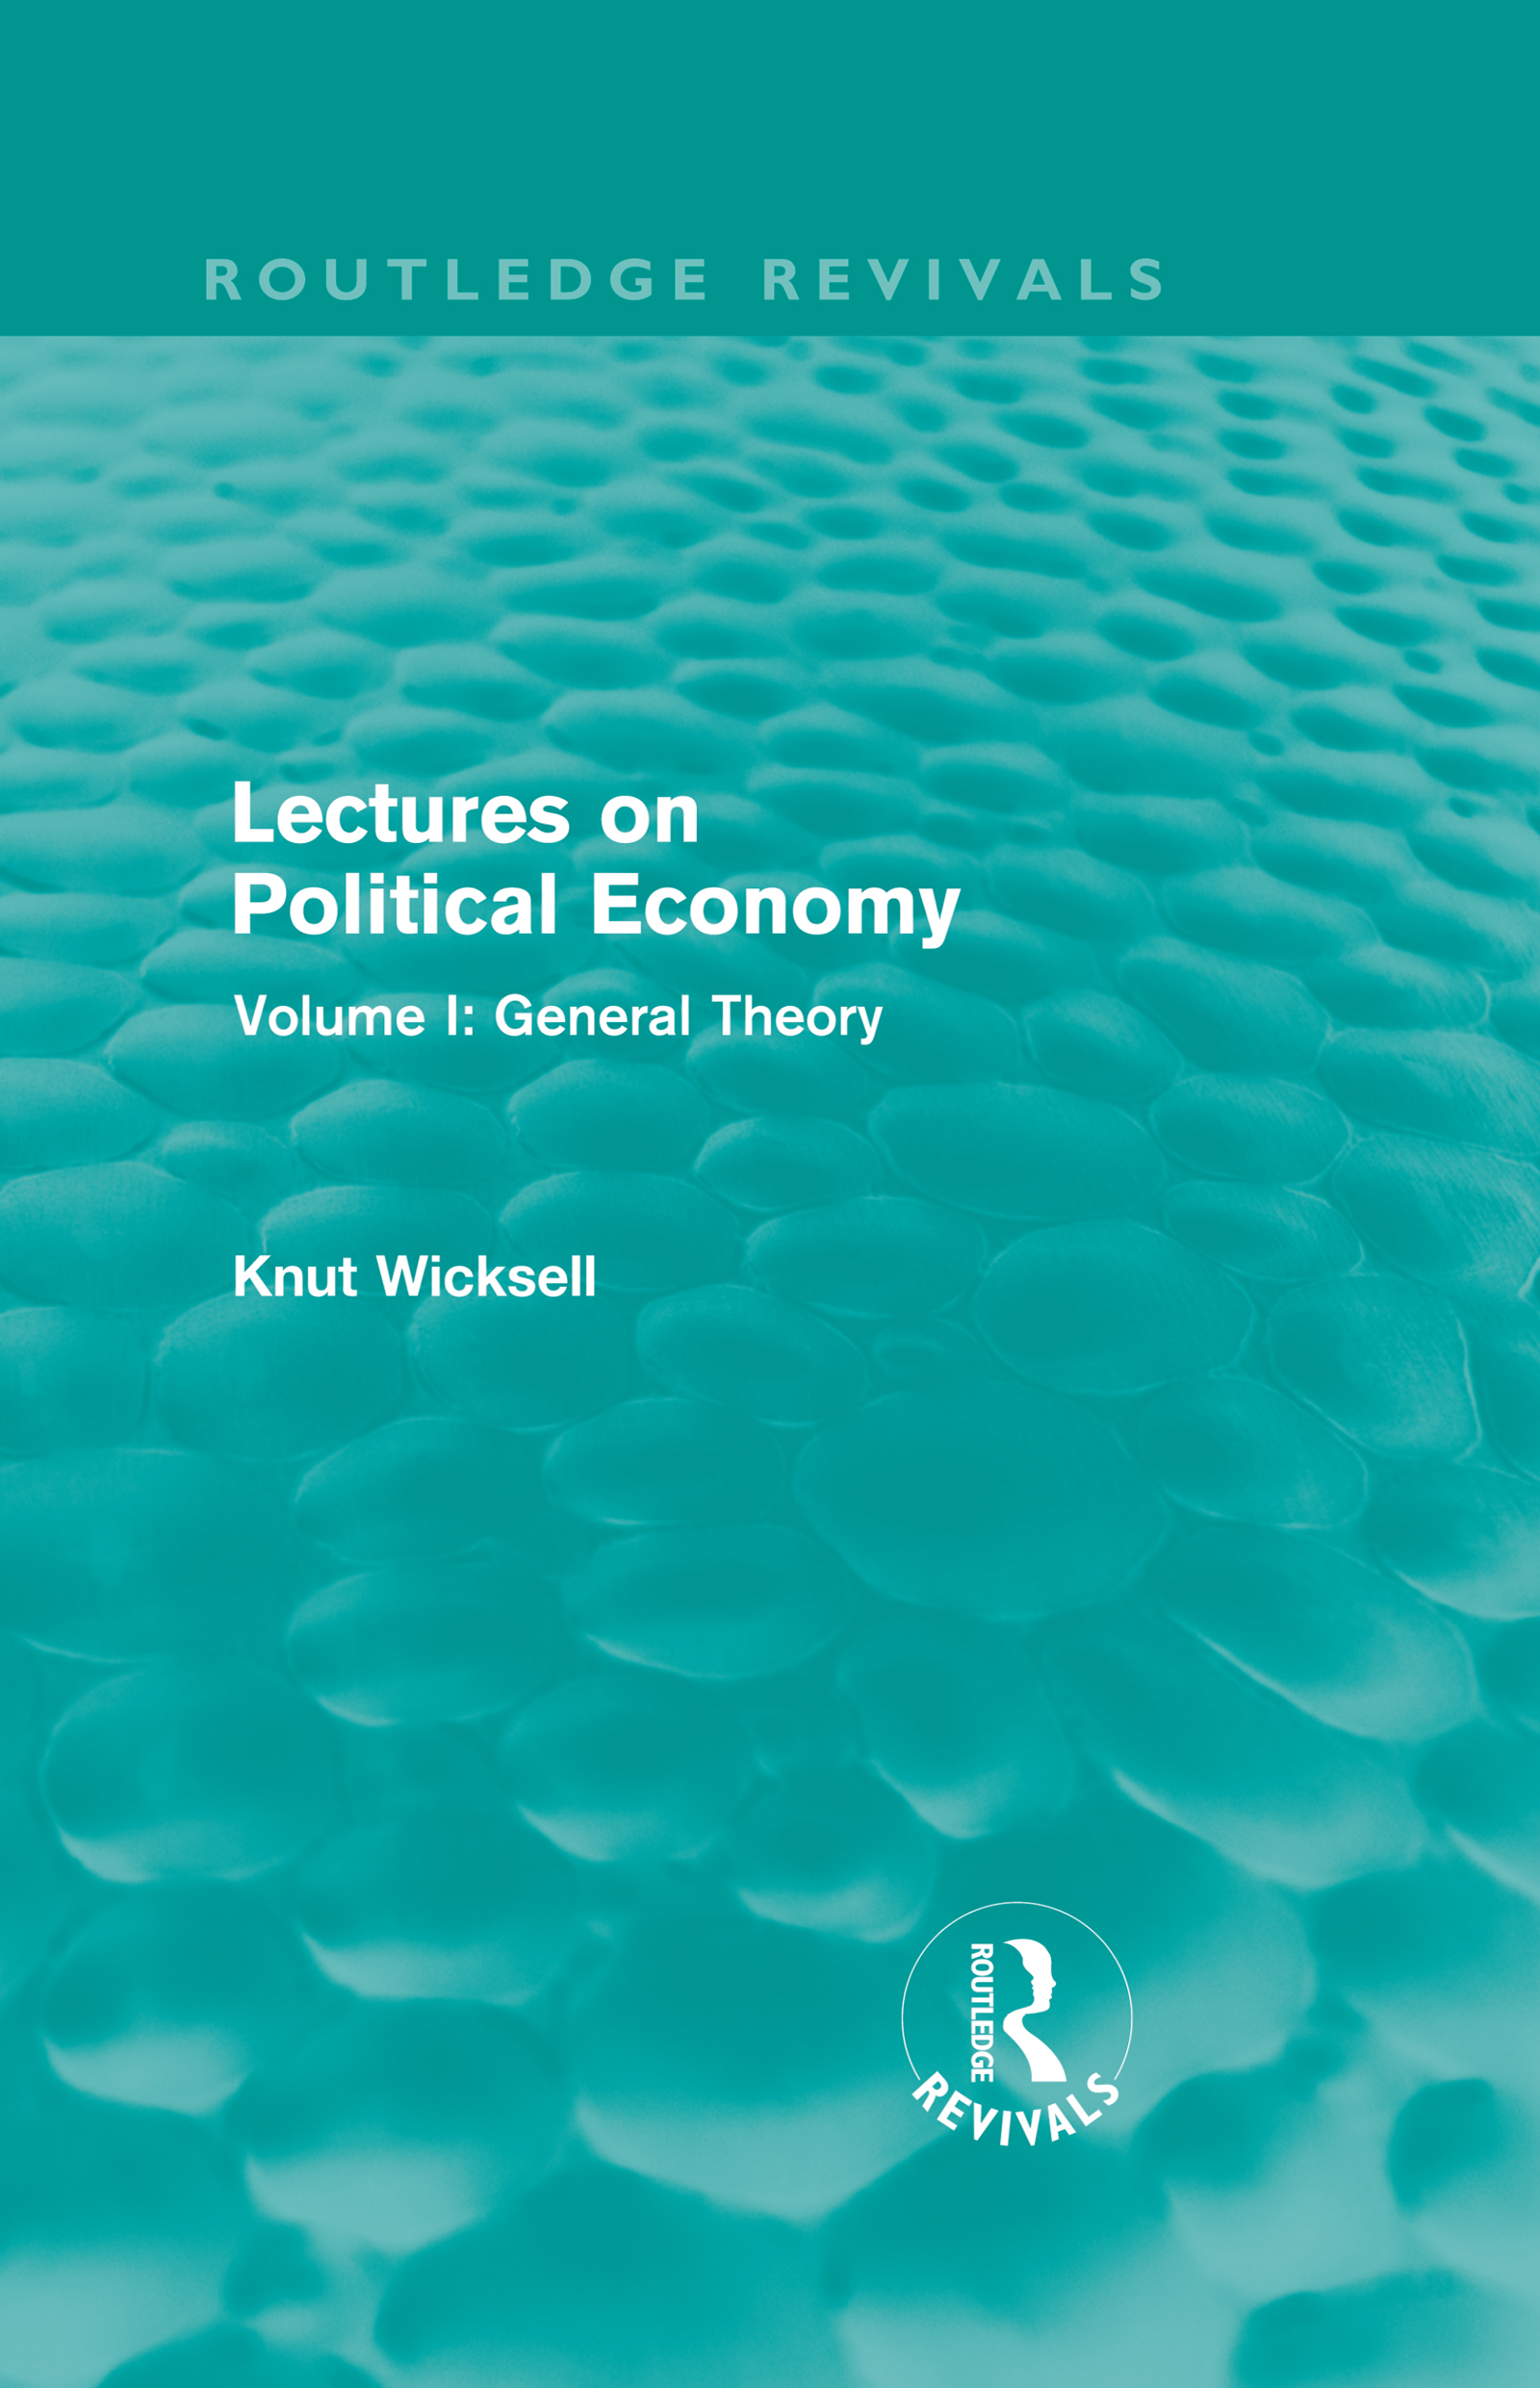 Lectures on Political Economy (Routledge Revivals): Volume I: General Theory, 1st Edition (Hardback) book cover